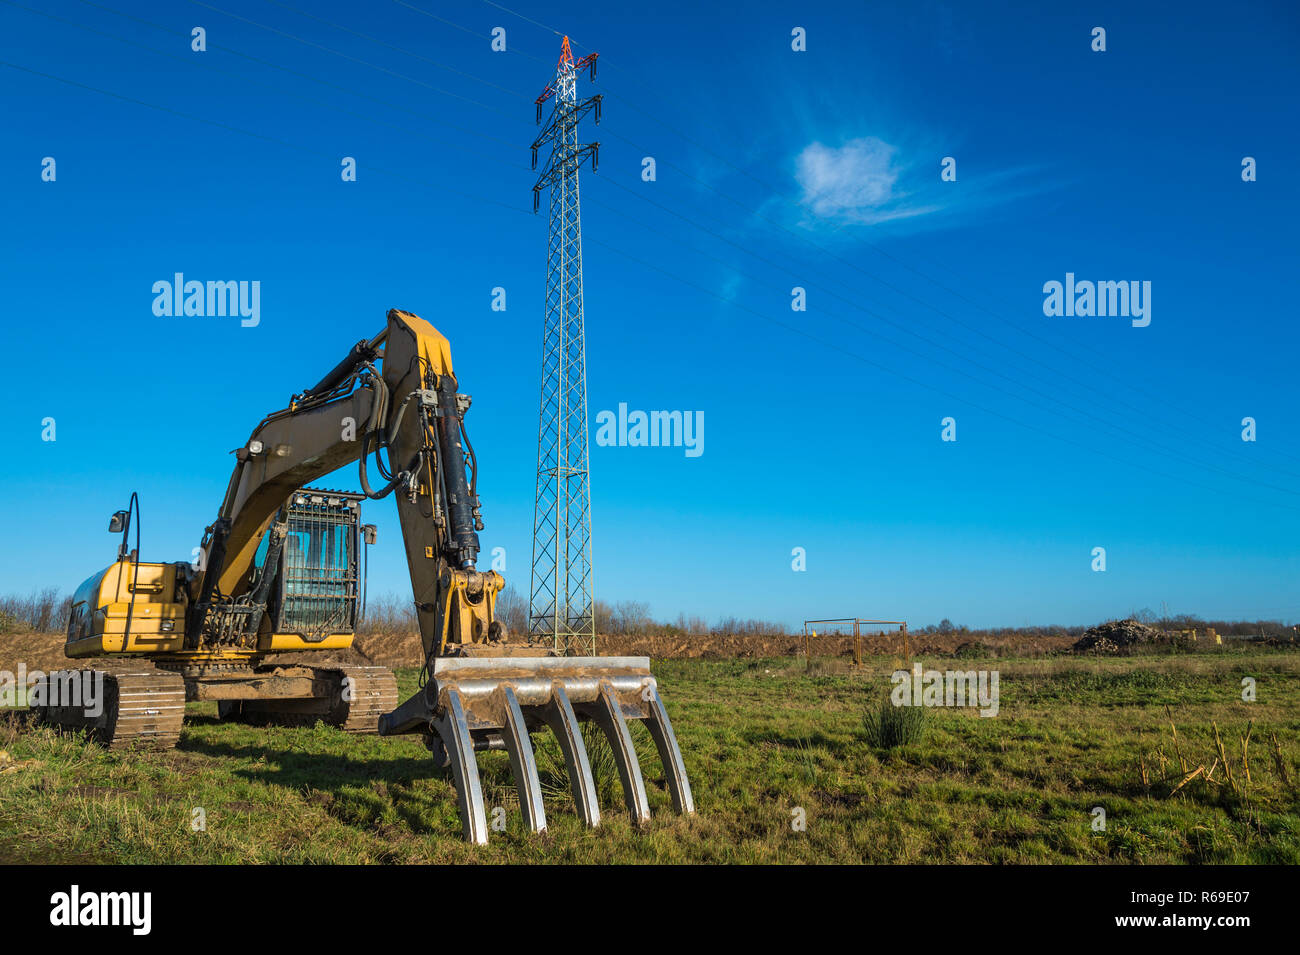 Specialty Excavator With Fork For Clearing Of Tree Trunks In Front Of A Pylon. - Stock Image